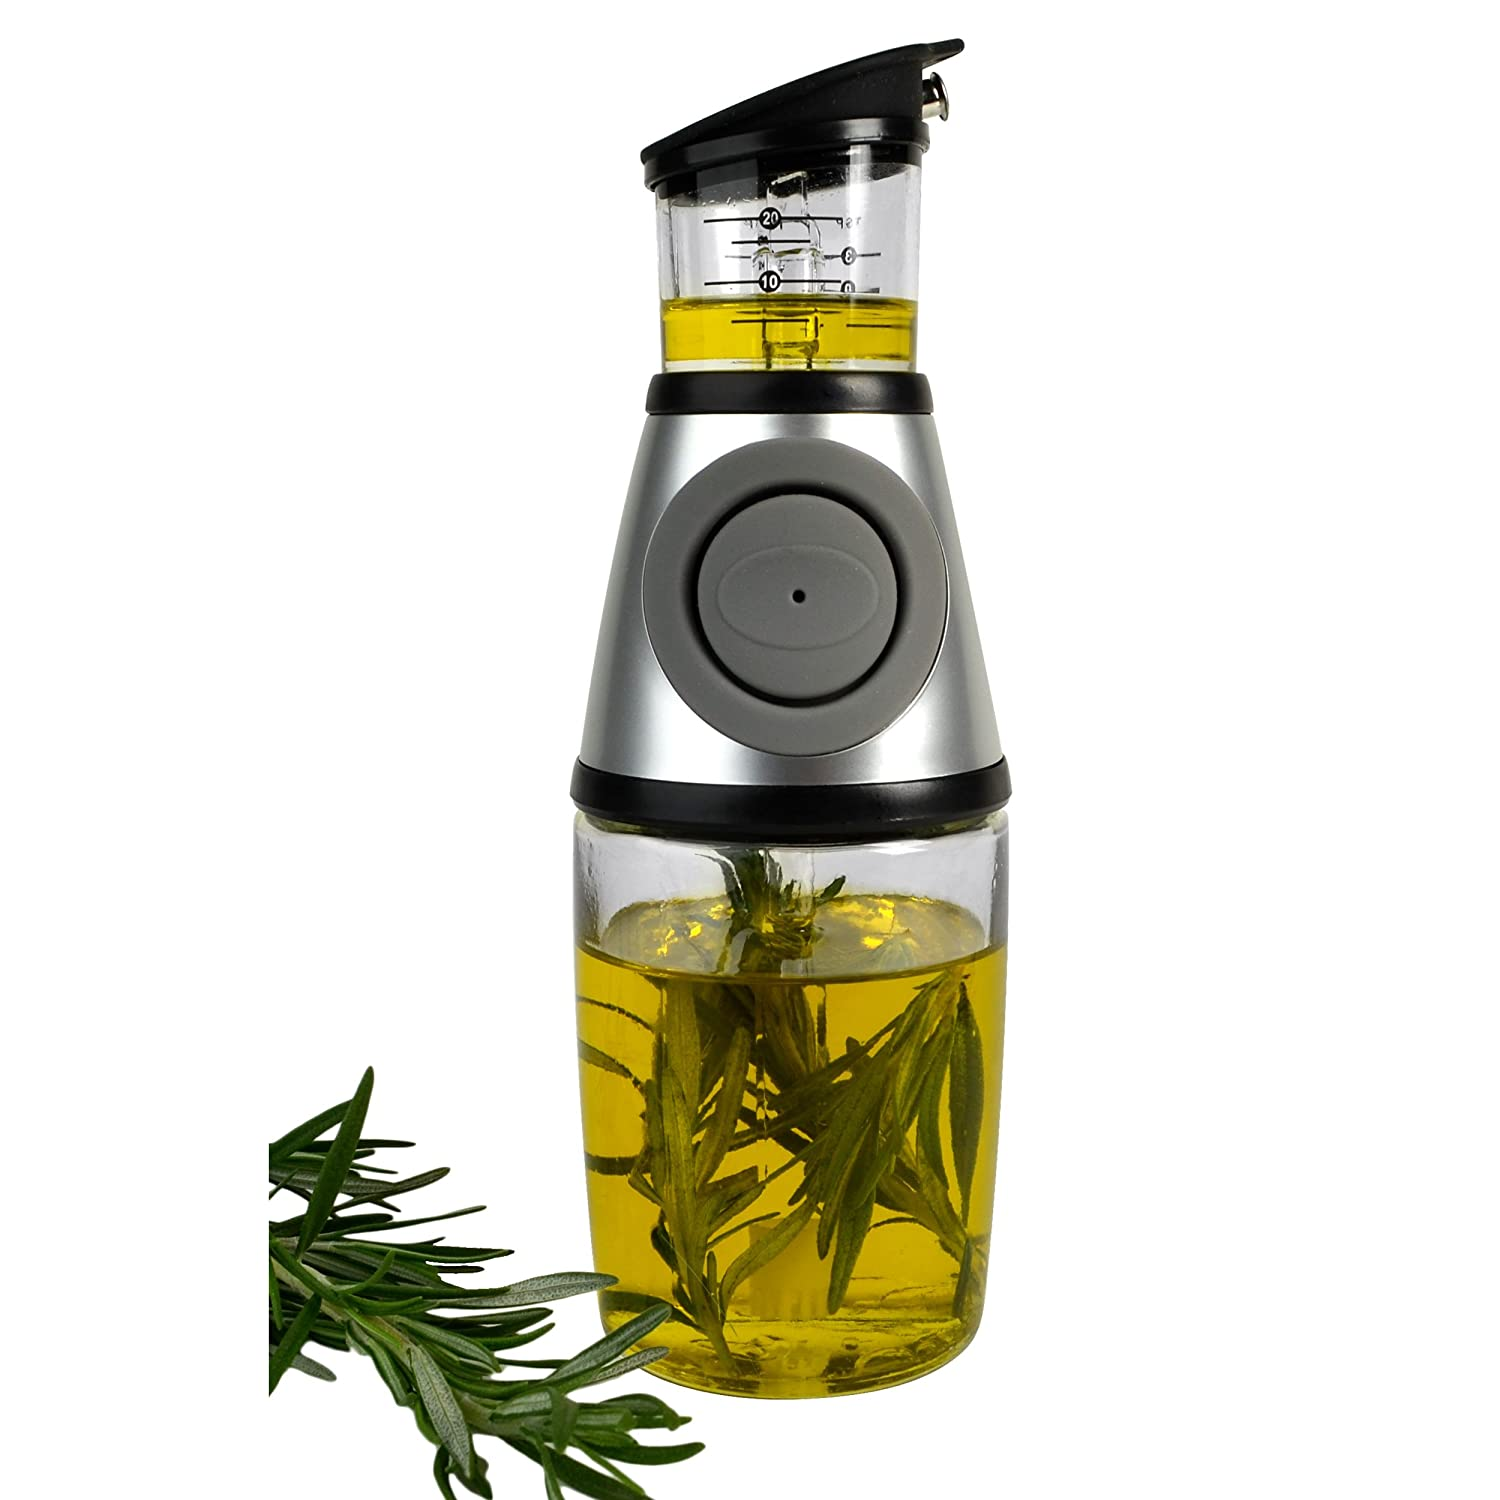 Elegant Amazon.com: Artland Press And Measure Glass Herb With Patented Oil Infuser  And Filter, 10 Ounce: Drinkware: Kitchen U0026 Dining